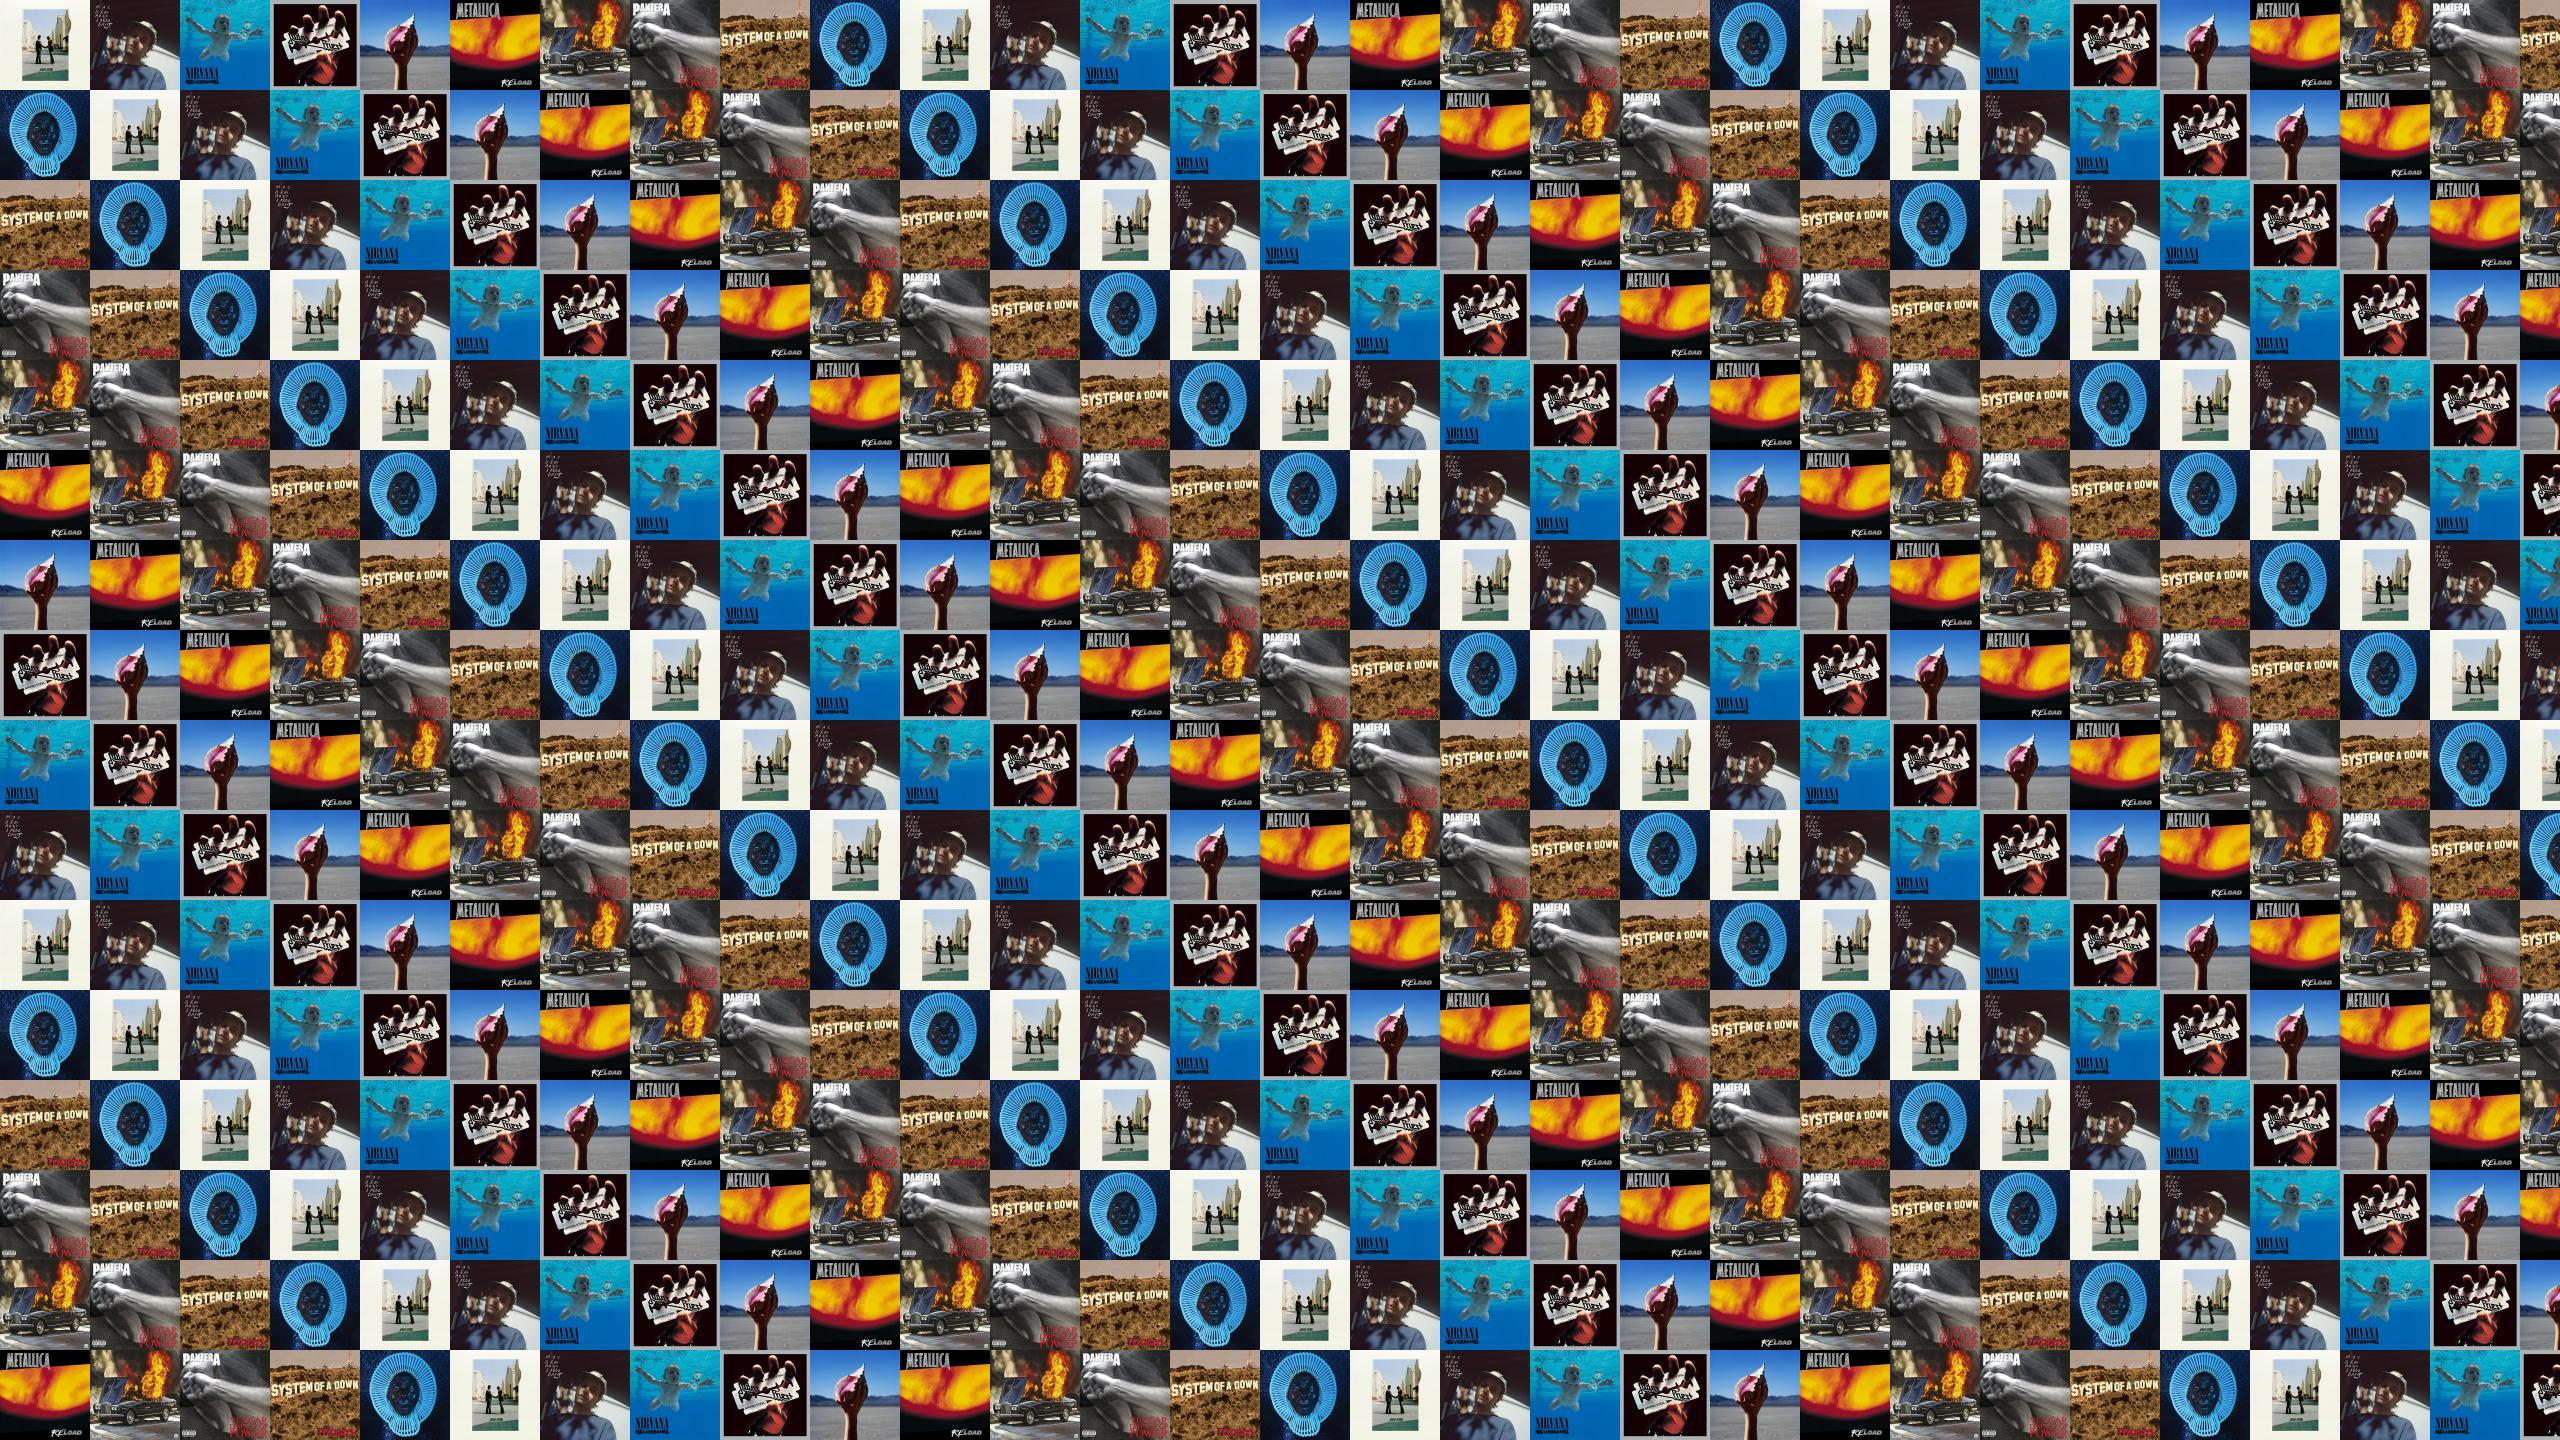 Pink Floyd Wish You Were Here Mac Demarco Wallpaper Tiled